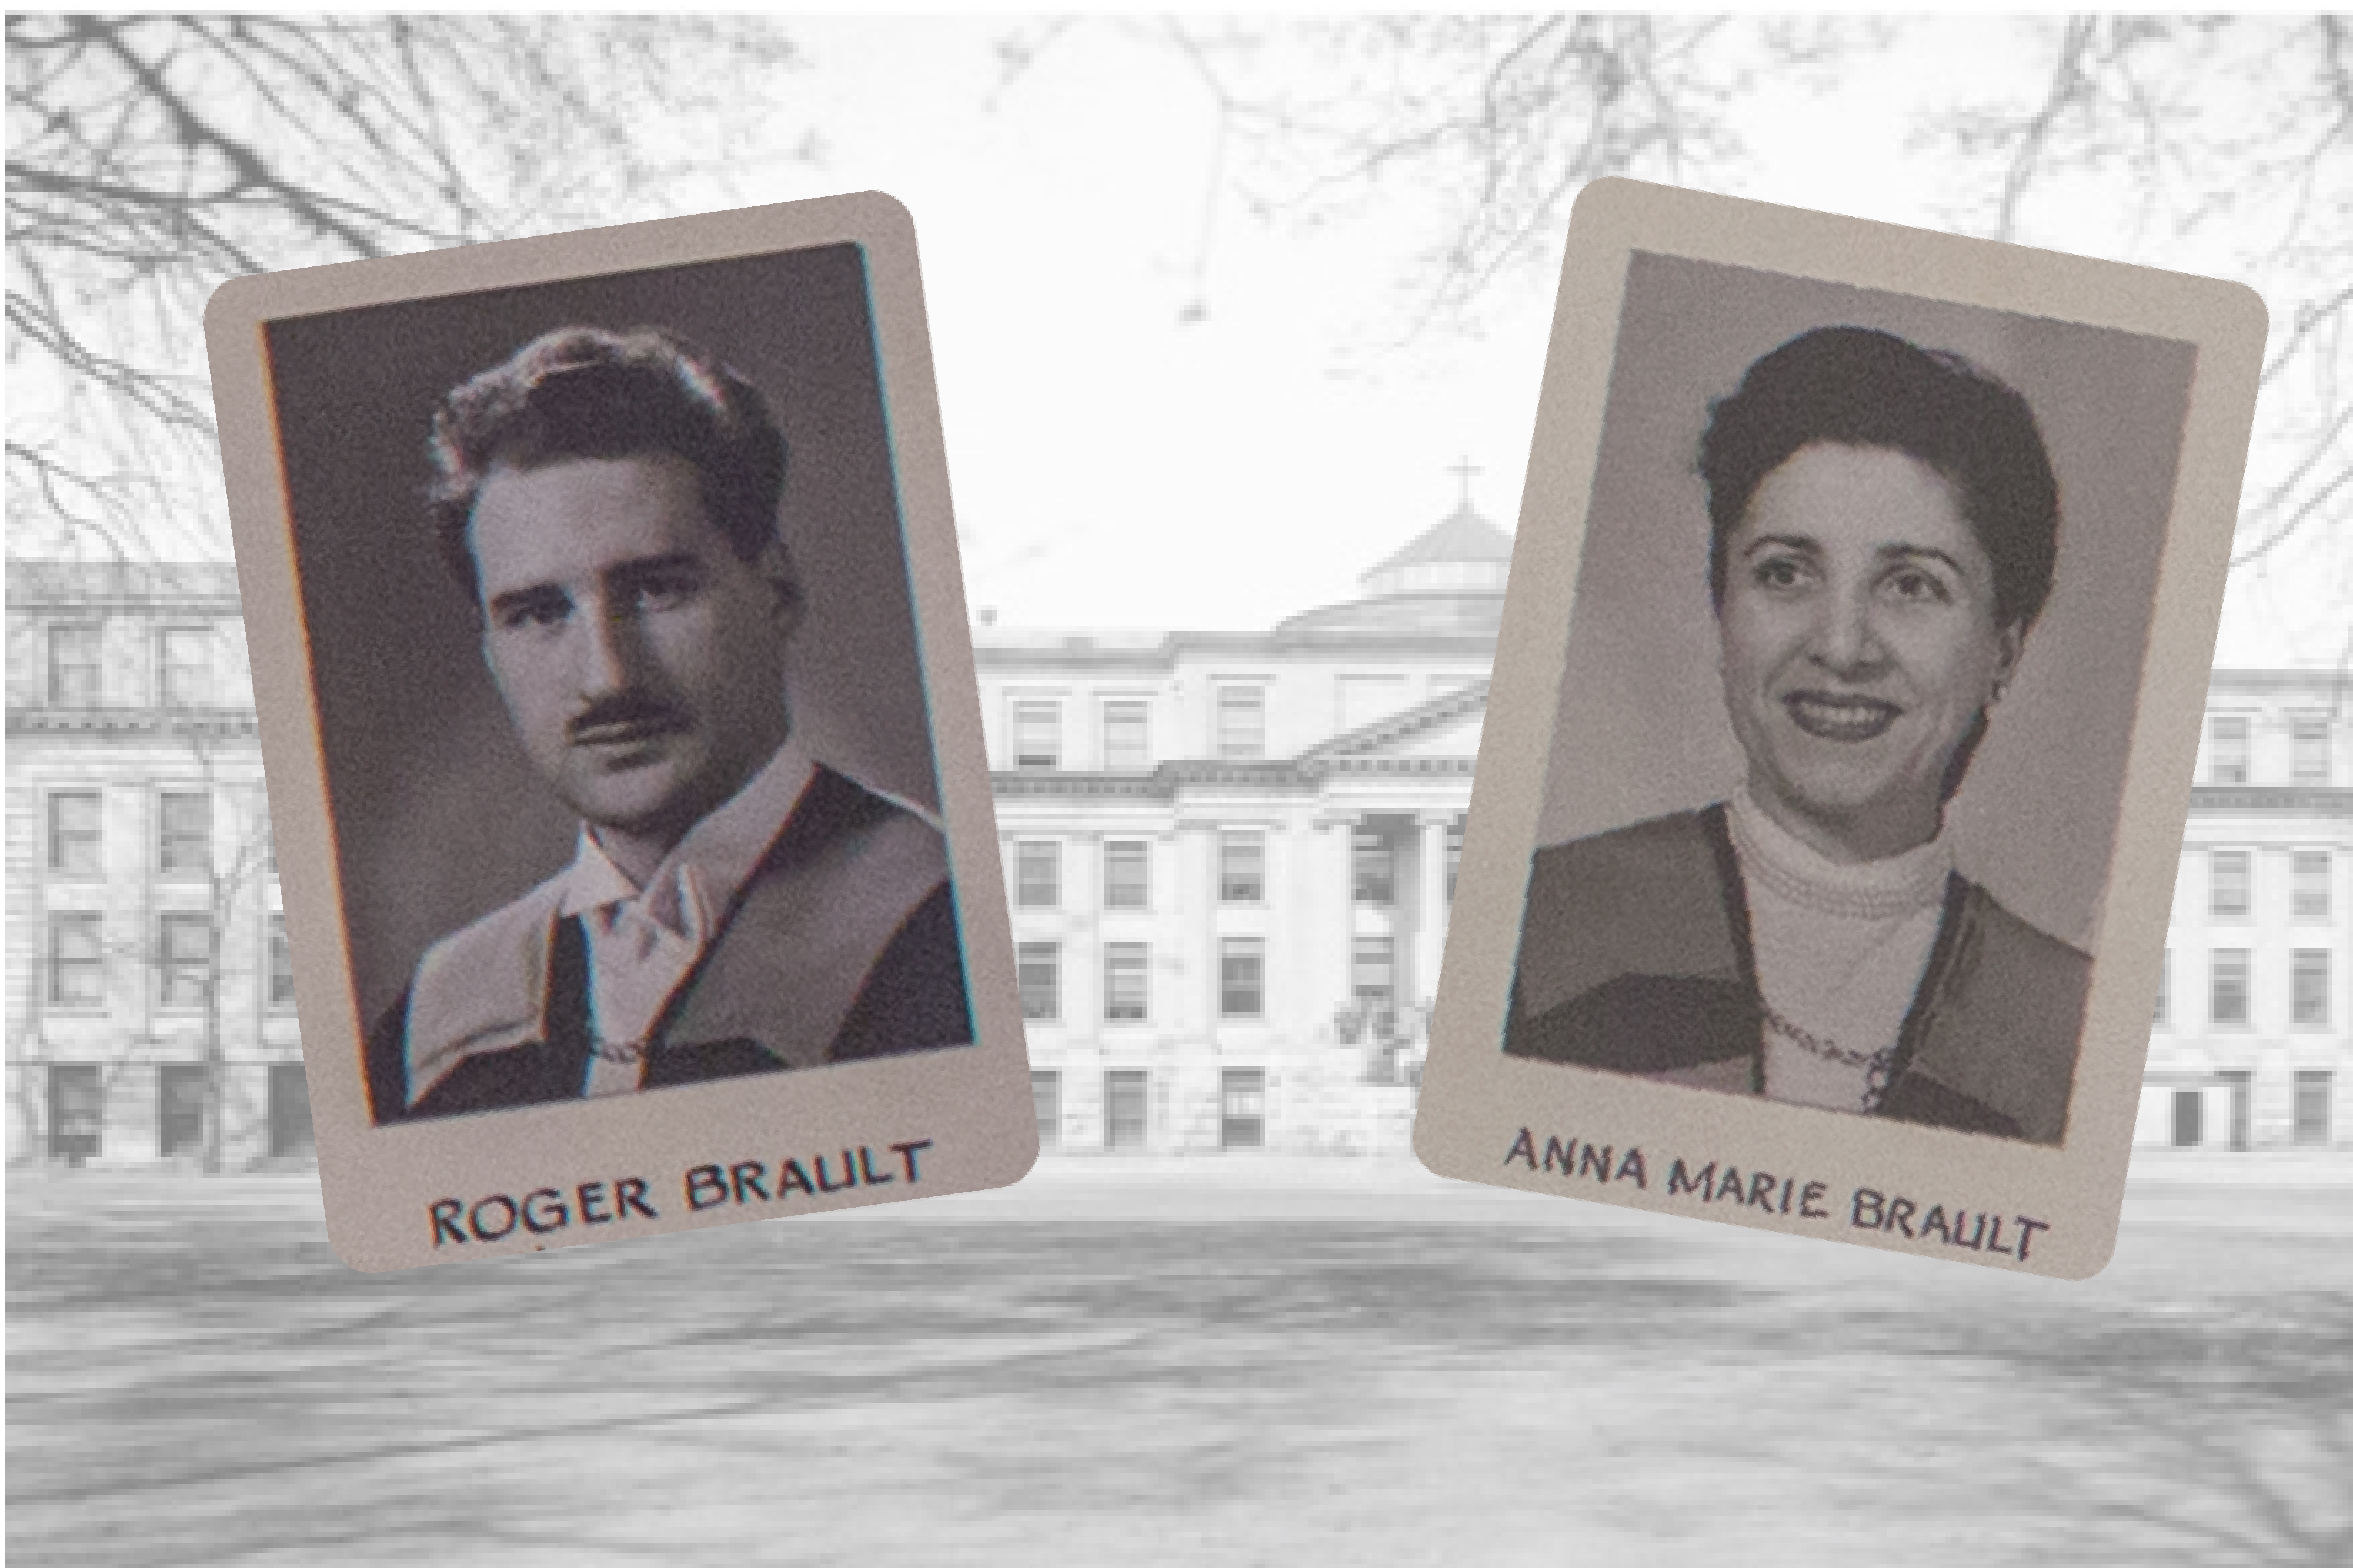 headshot of roger and anna maria brault in front of an image of the university of ottawa